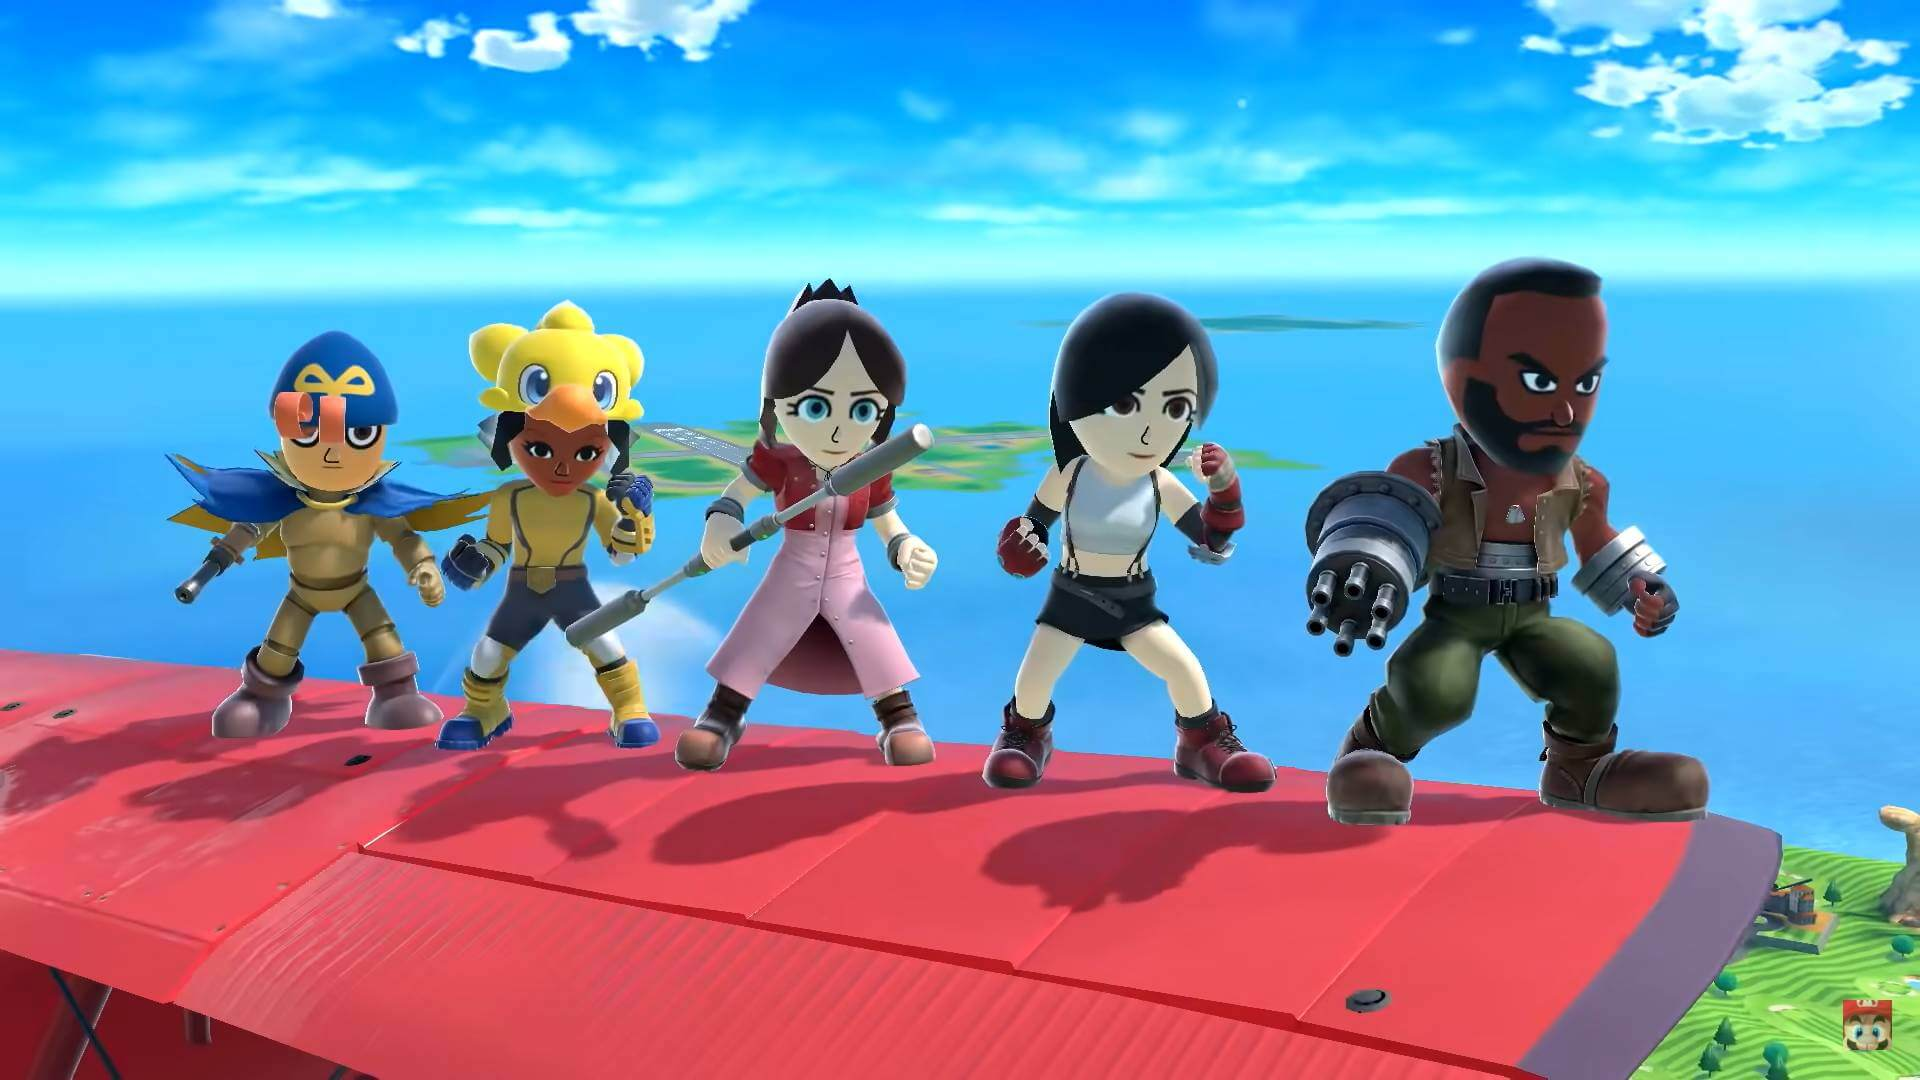 Five New Mii Fighter Costumes in SSBU